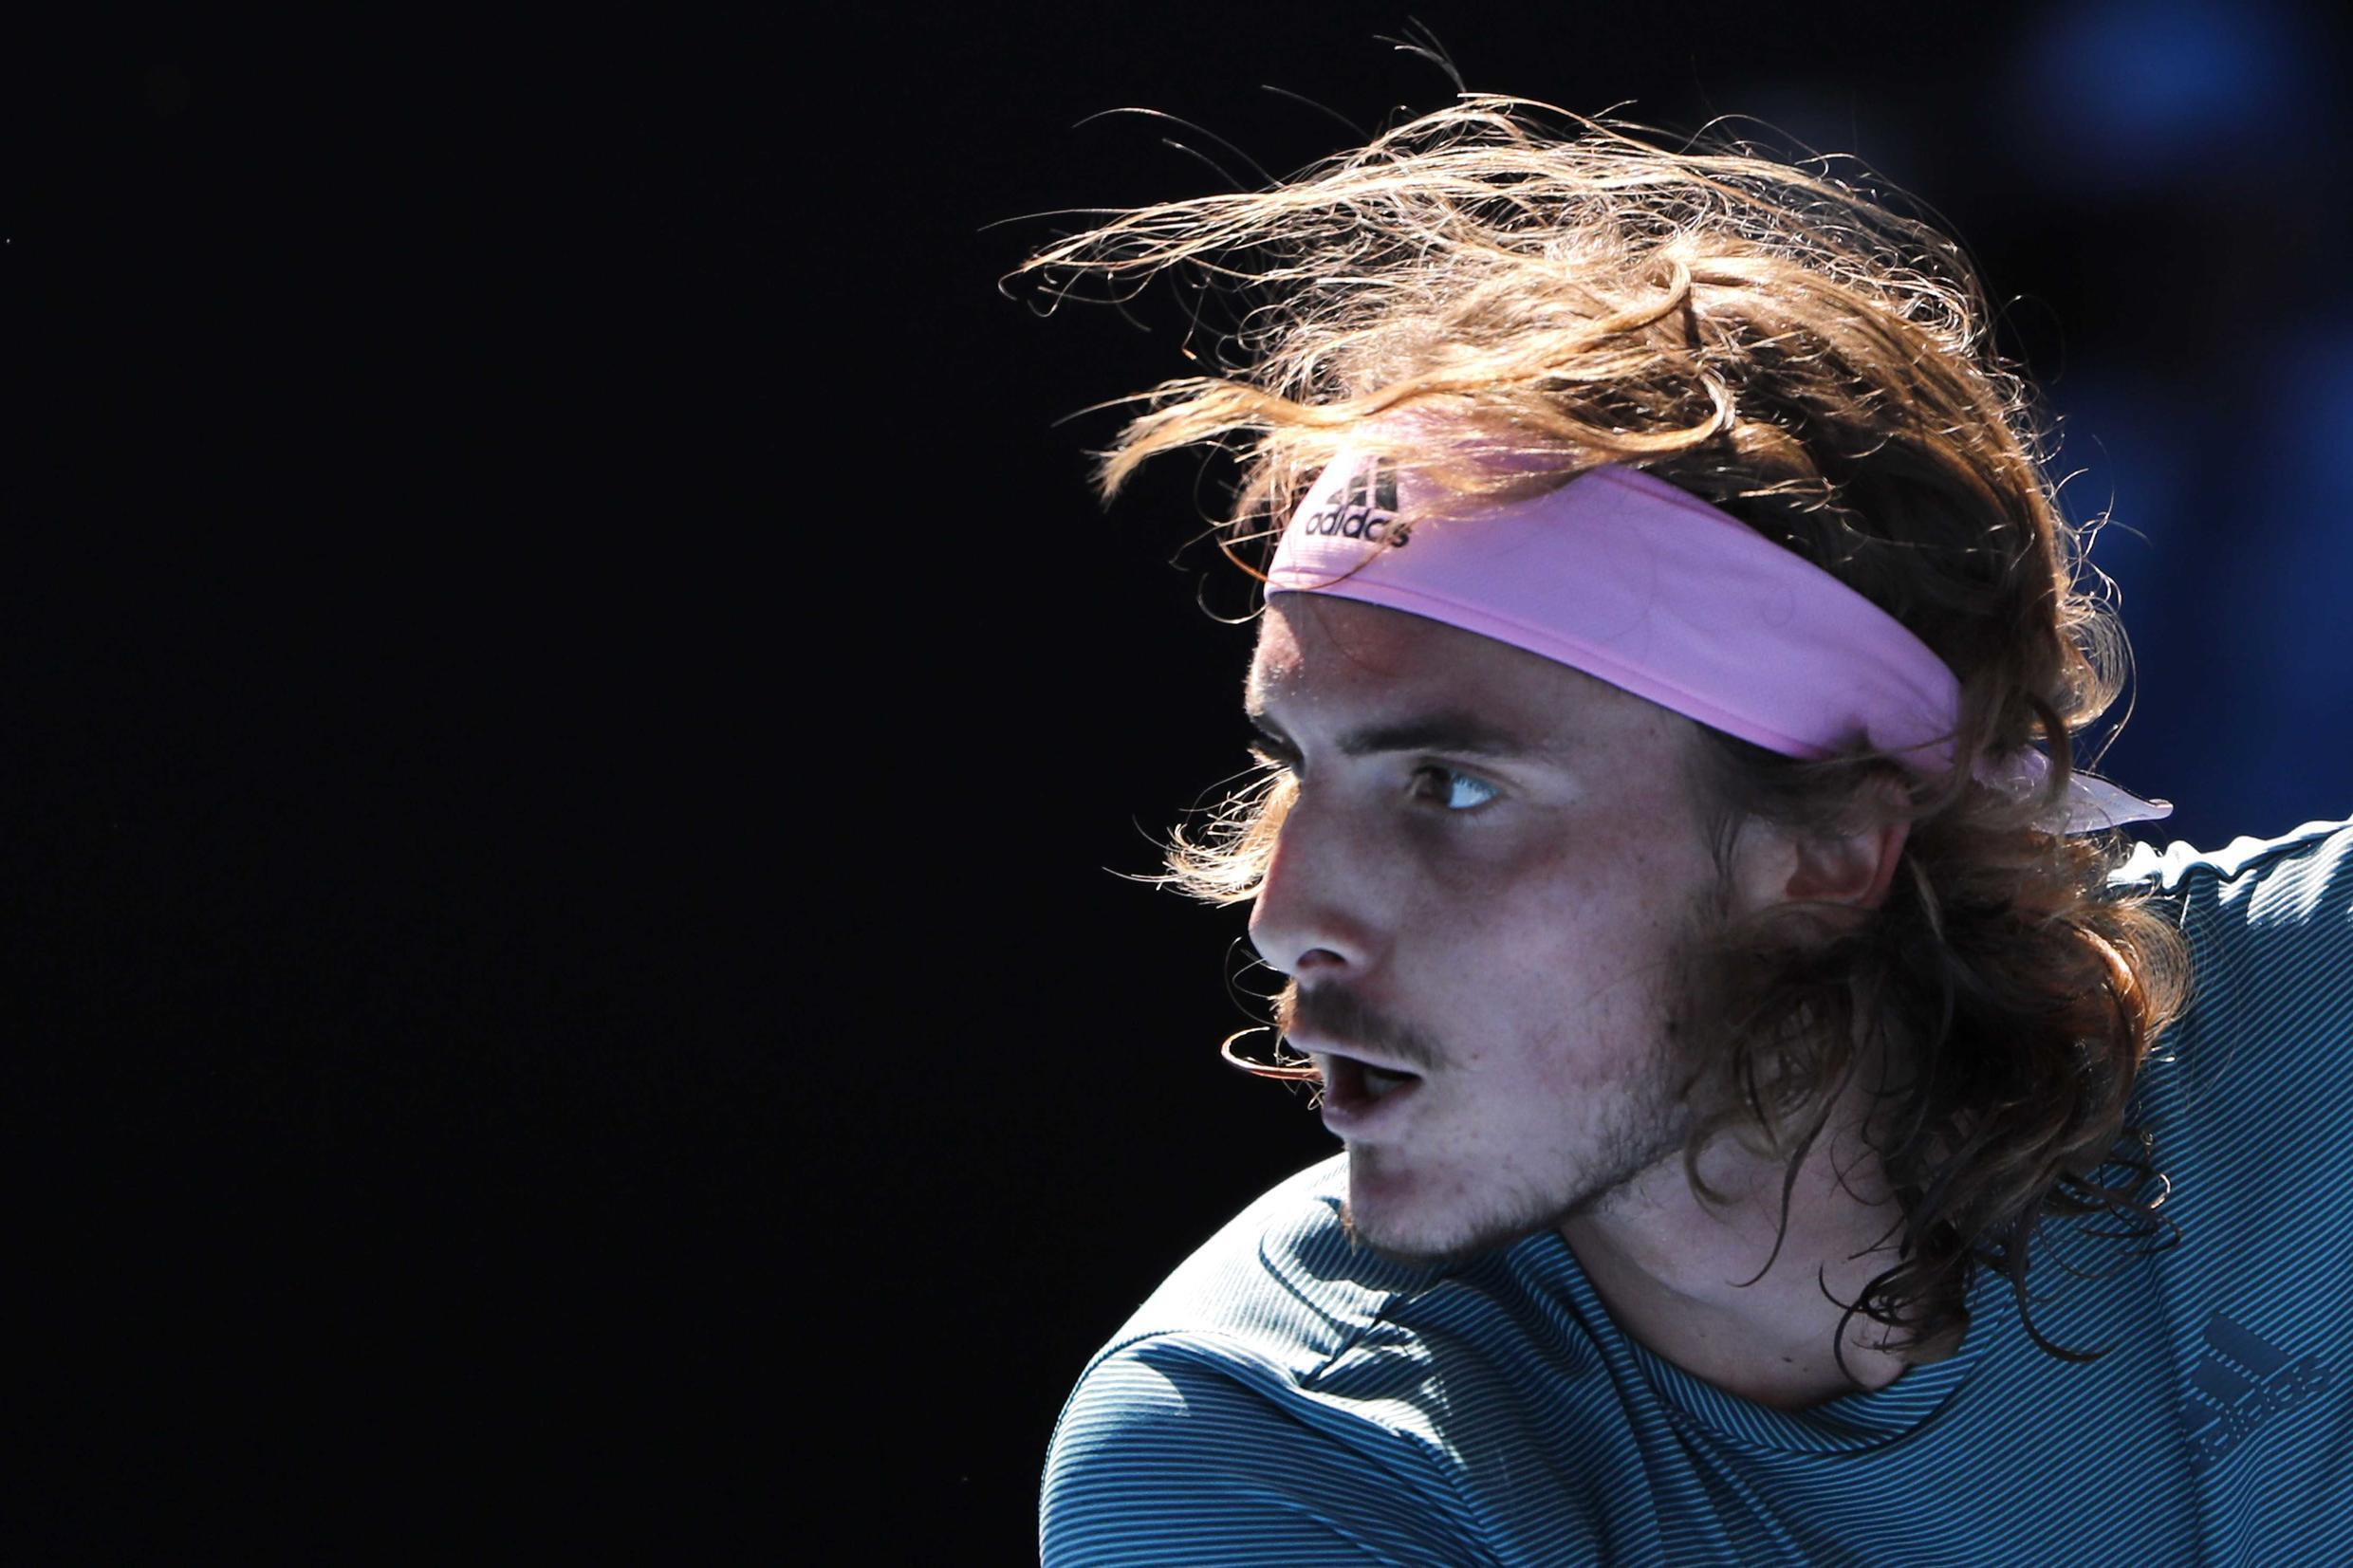 Stefanos Tsitsipas reached a Grand Slam tournament semi-final for the first time after his win over Roberto Bautista Agut at the Australian Open.